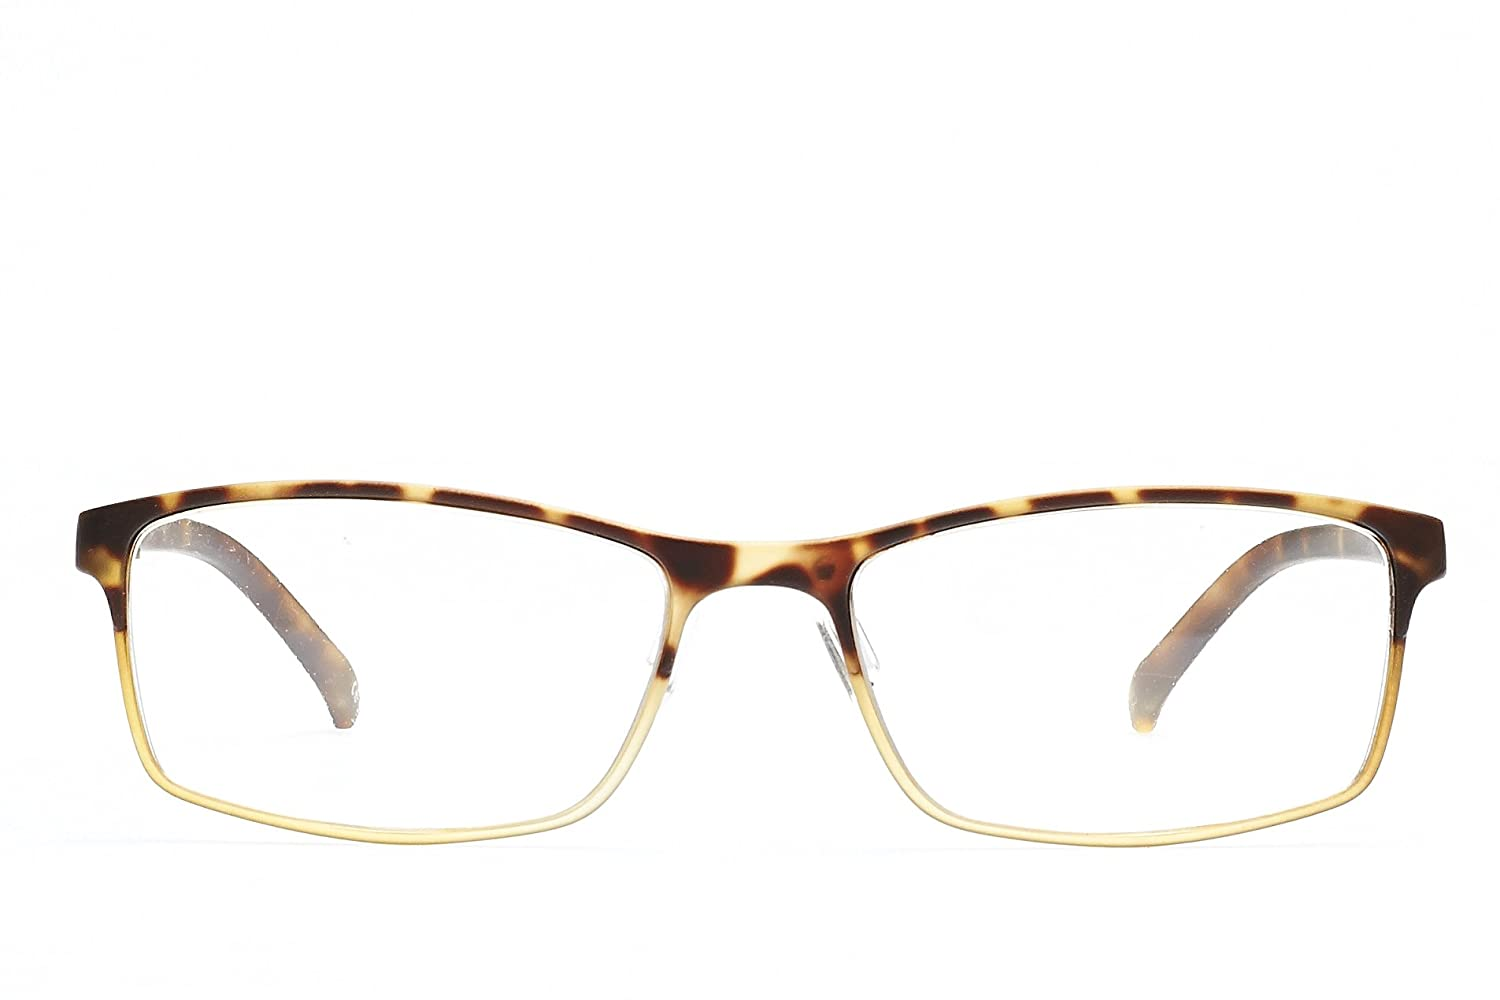 e549dab70fb3 Amazon.com  Massimo Milano Cr1016 Vintage Rx Eyeglasses Clear Lens Glasses  Lightweight Rx Frames  Clothing